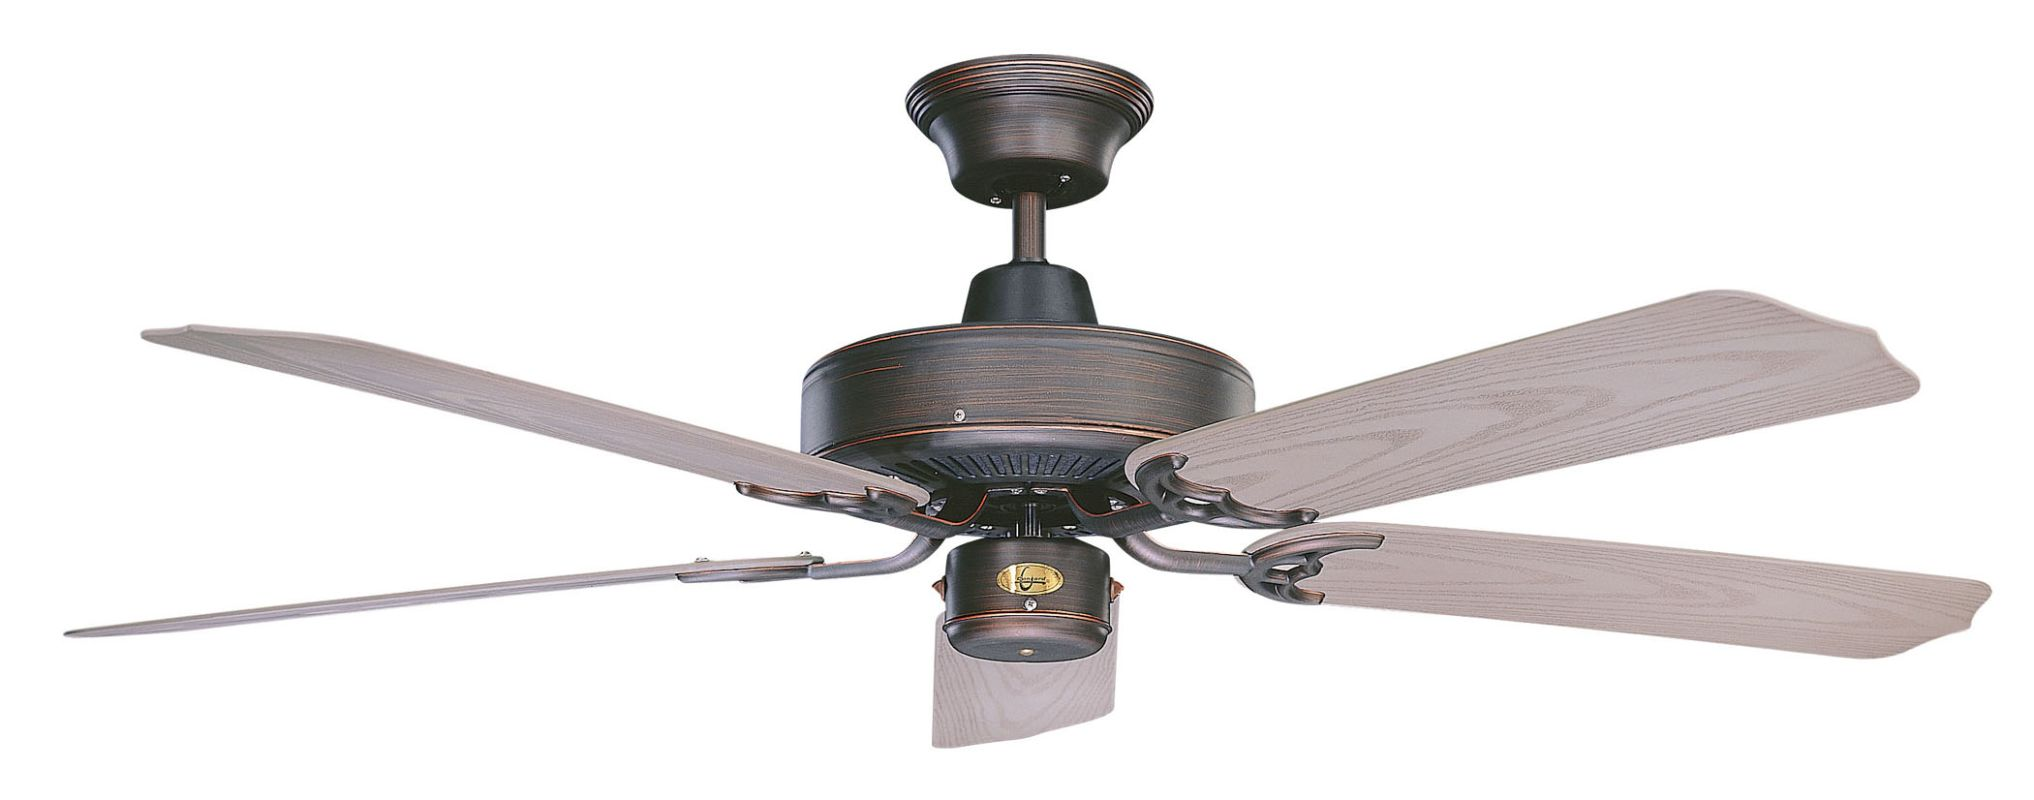 Concord 52na5orb oil rubbed bronze weathered bronze blades for Ceiling fan motor screws